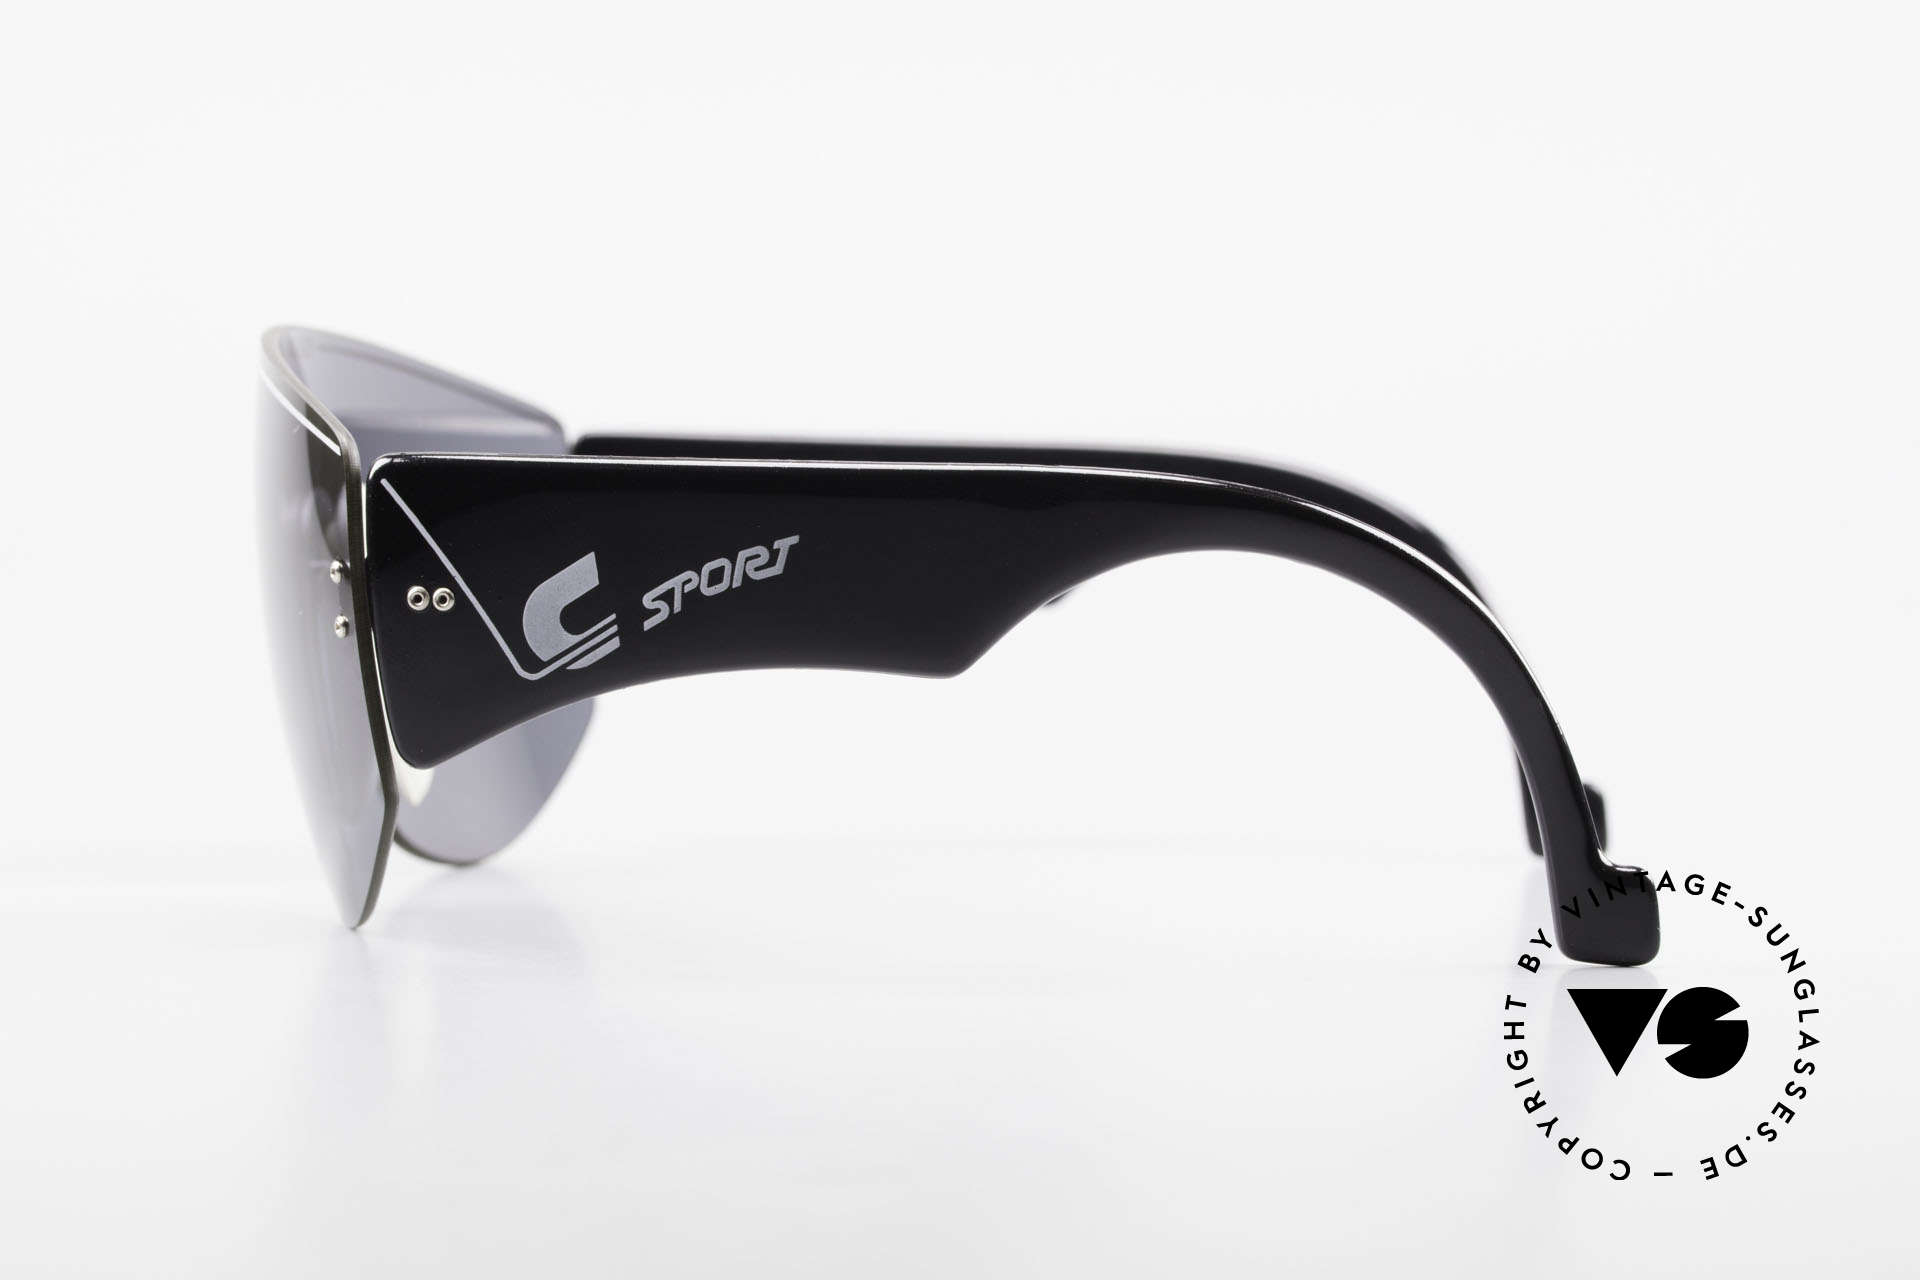 Carrera 5414 90's Sunglasses Sports Shades, new old stock, NOS (like all our vintage Carrera Sport), Made for Men